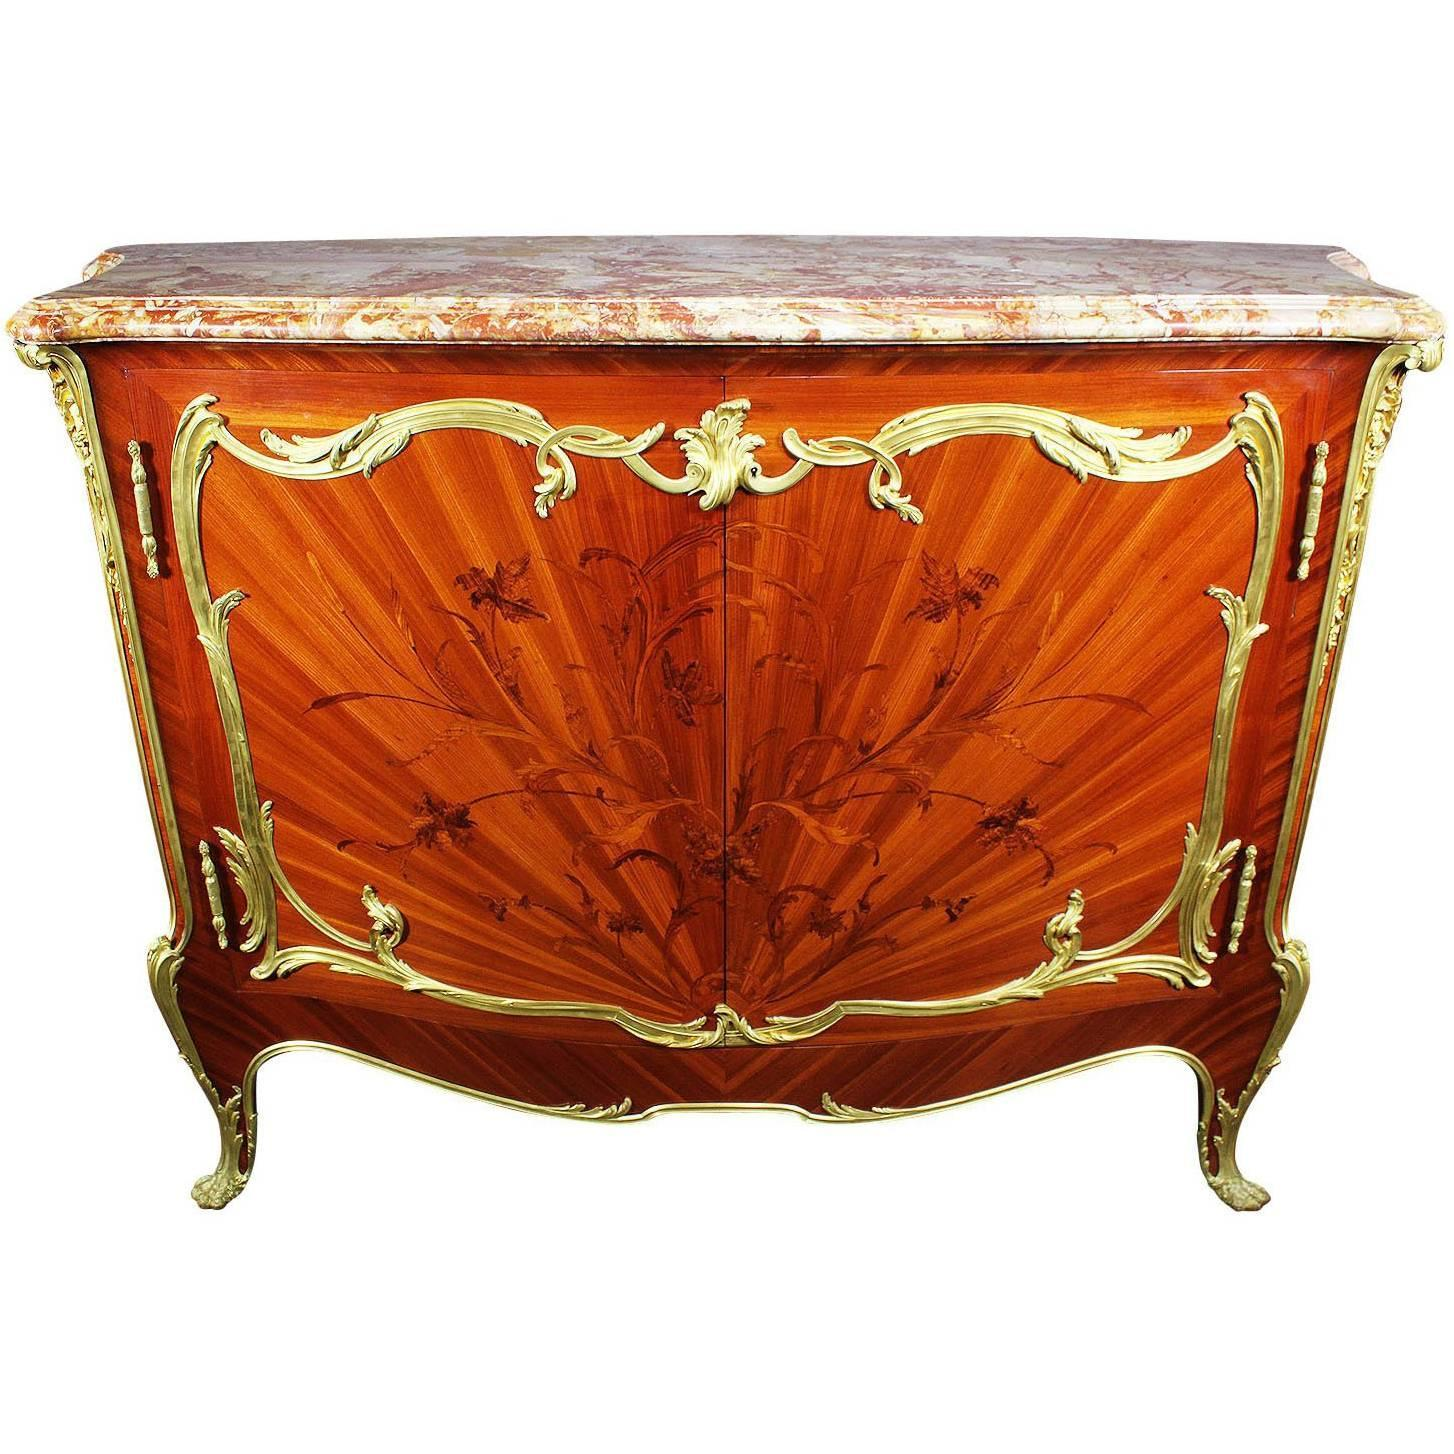 Meuble Style Louis Xv French 19th Century Louis Xv Style Ormolu Mounted Marquetry Meuble D Appui